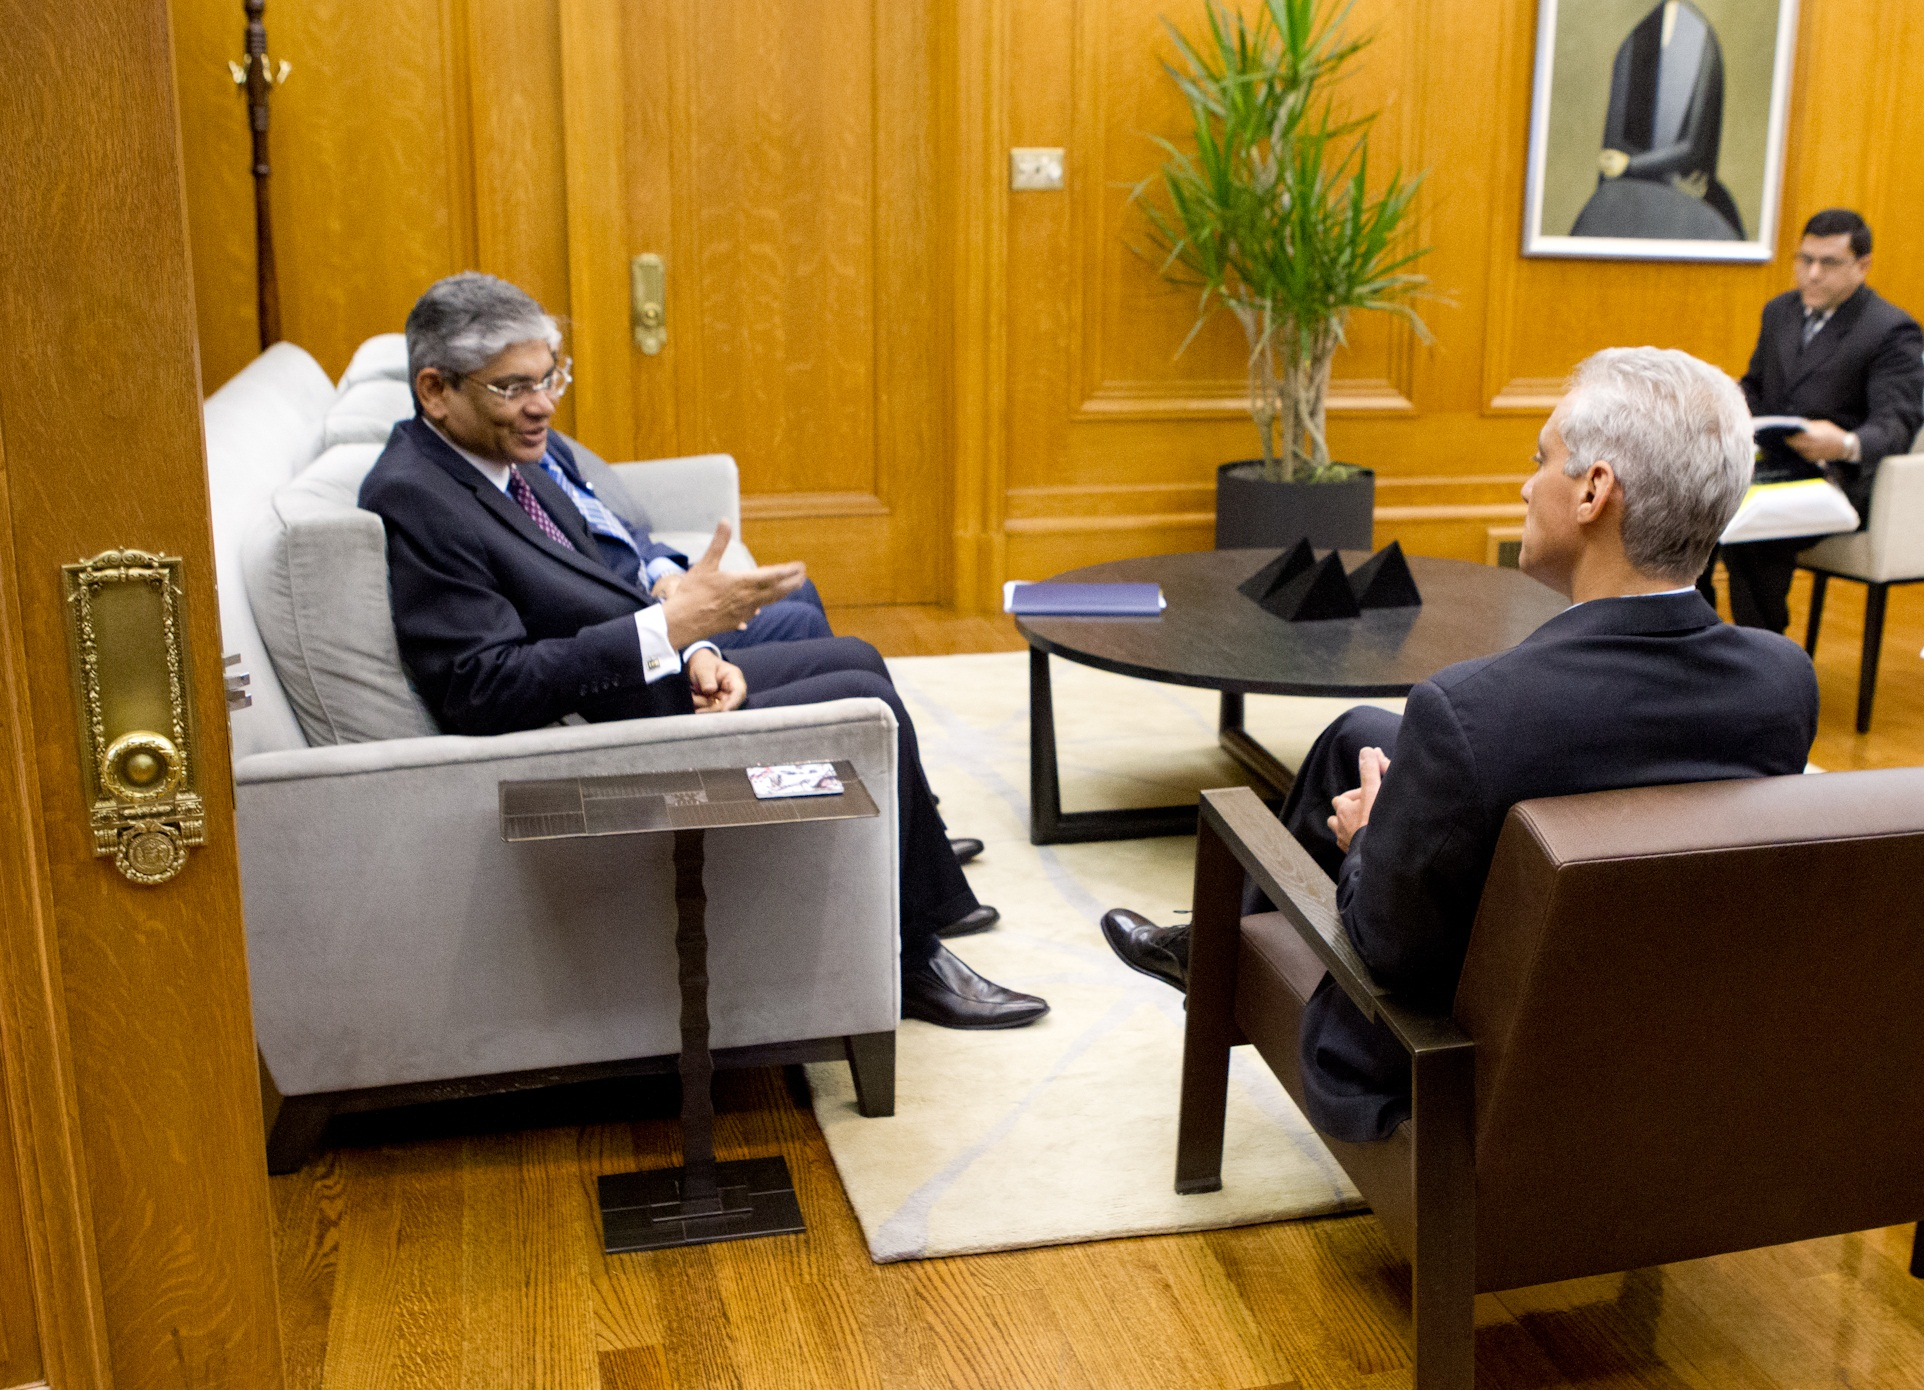 Mayor Emanuel Welcomes to Chicago Arun Kumar Singh, Indian Ambassador to the United States.